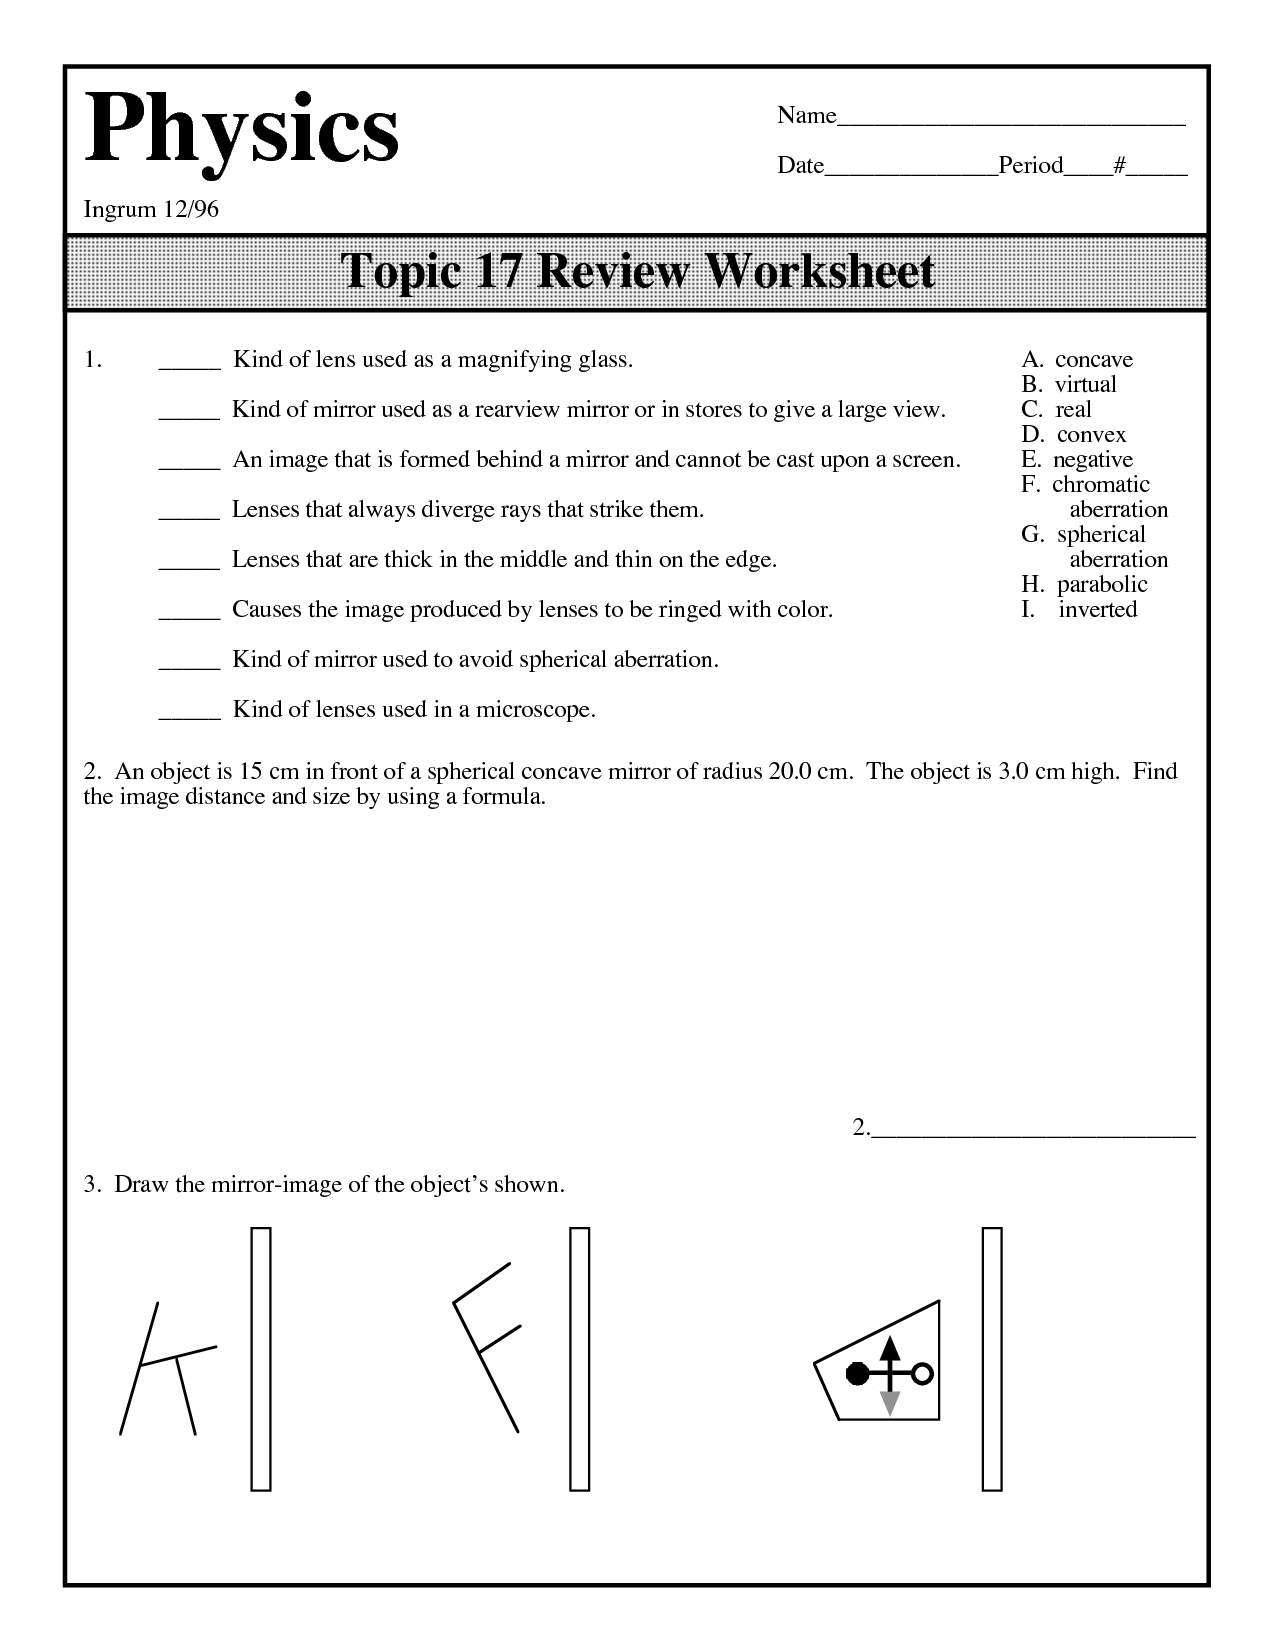 Worksheet Images In Plane Mirrors Answers